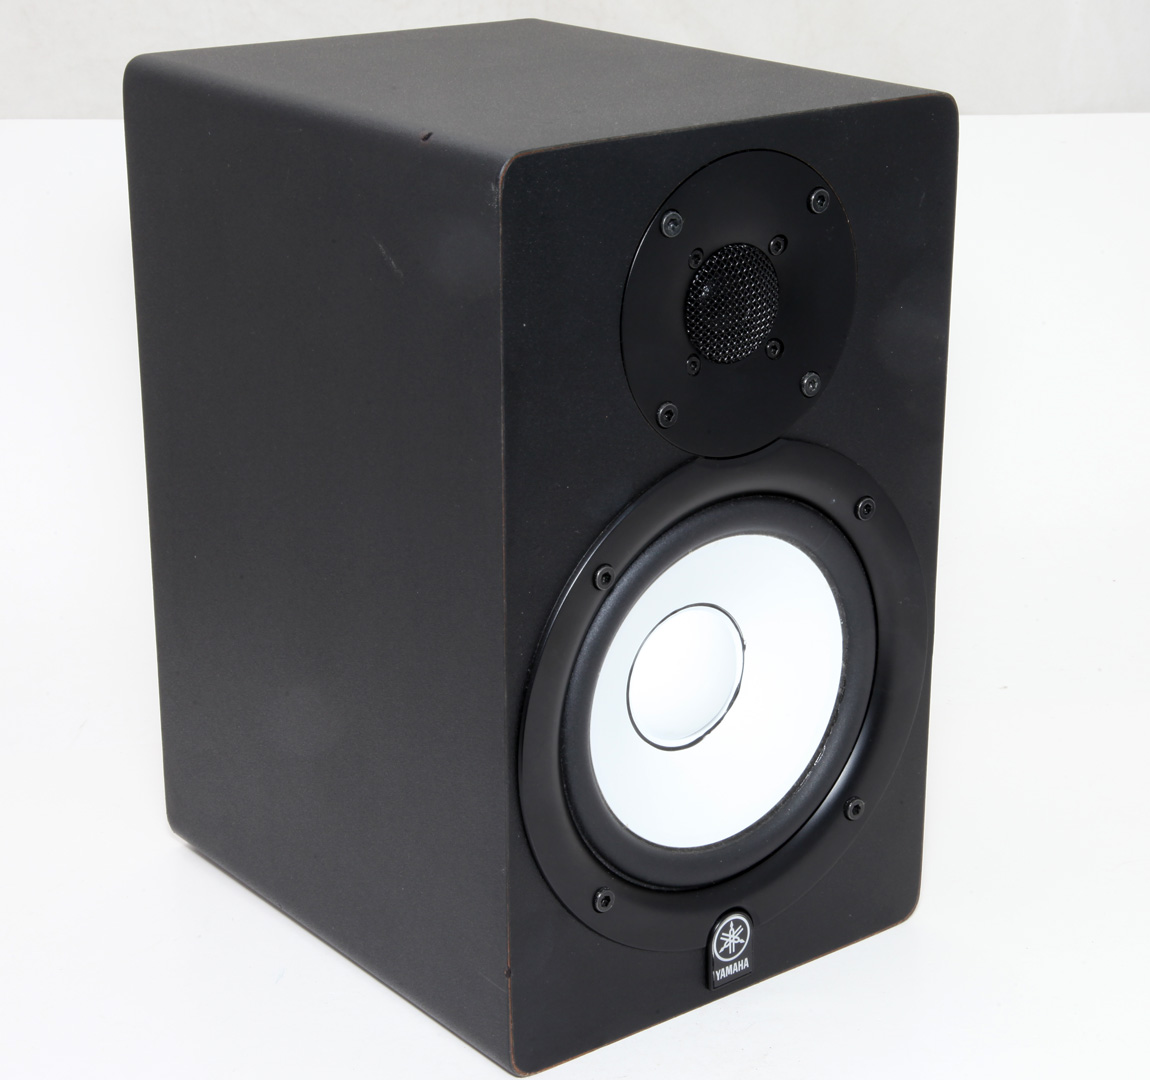 Yamaha hs50m 120v 45w powered monitor single speaker for Yamaha powered monitor speakers